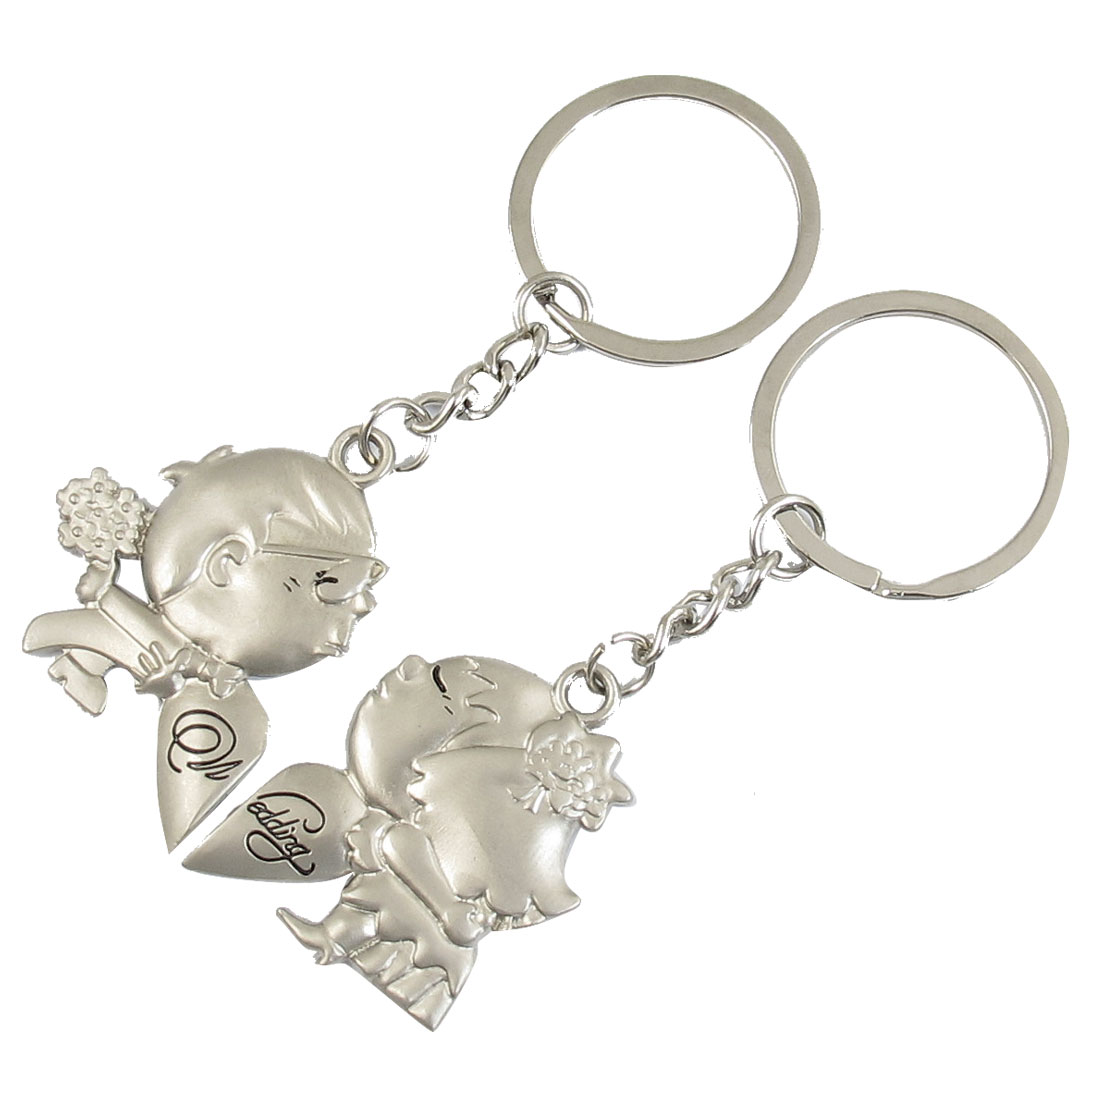 Silver Tone Bridegroom Bride Shaped Magnetic Pendant Keychain